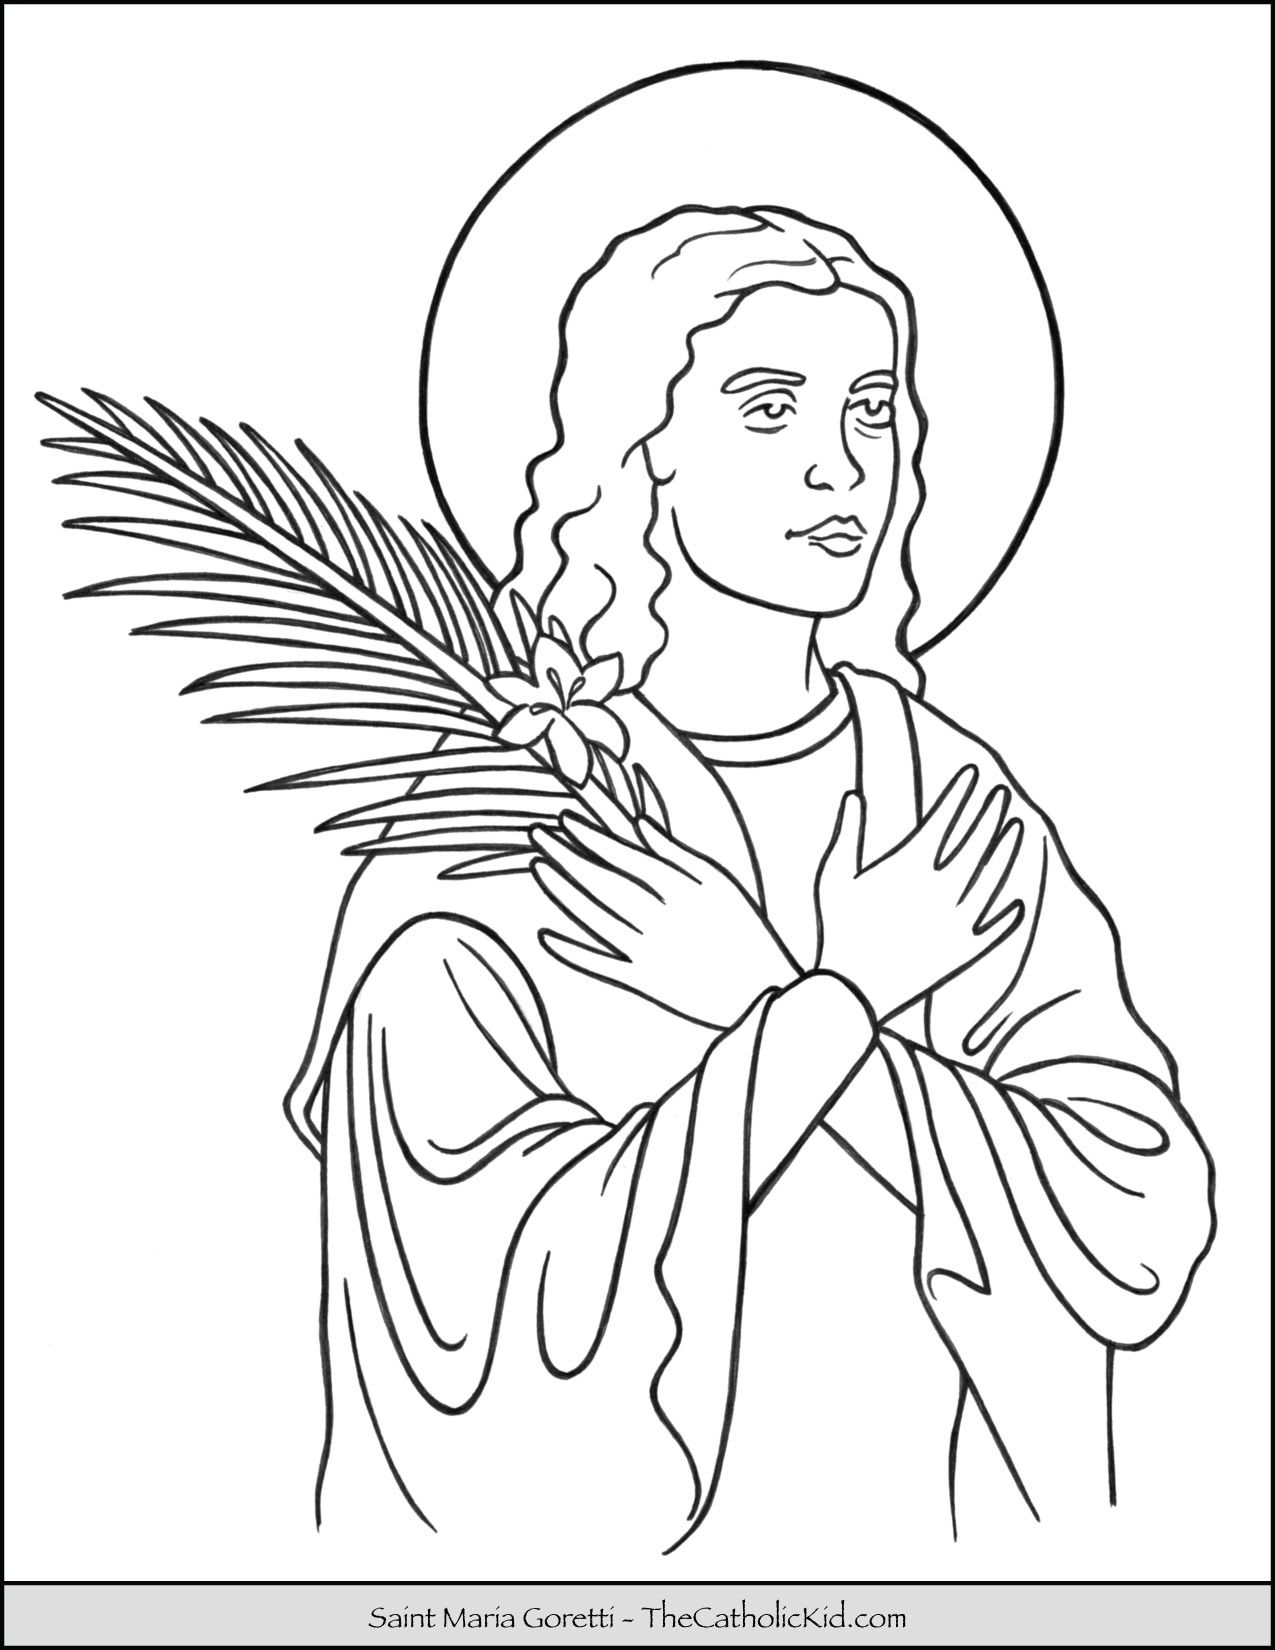 Saint Maria Goretti Coloring Page Thecatholickid Com St Maria